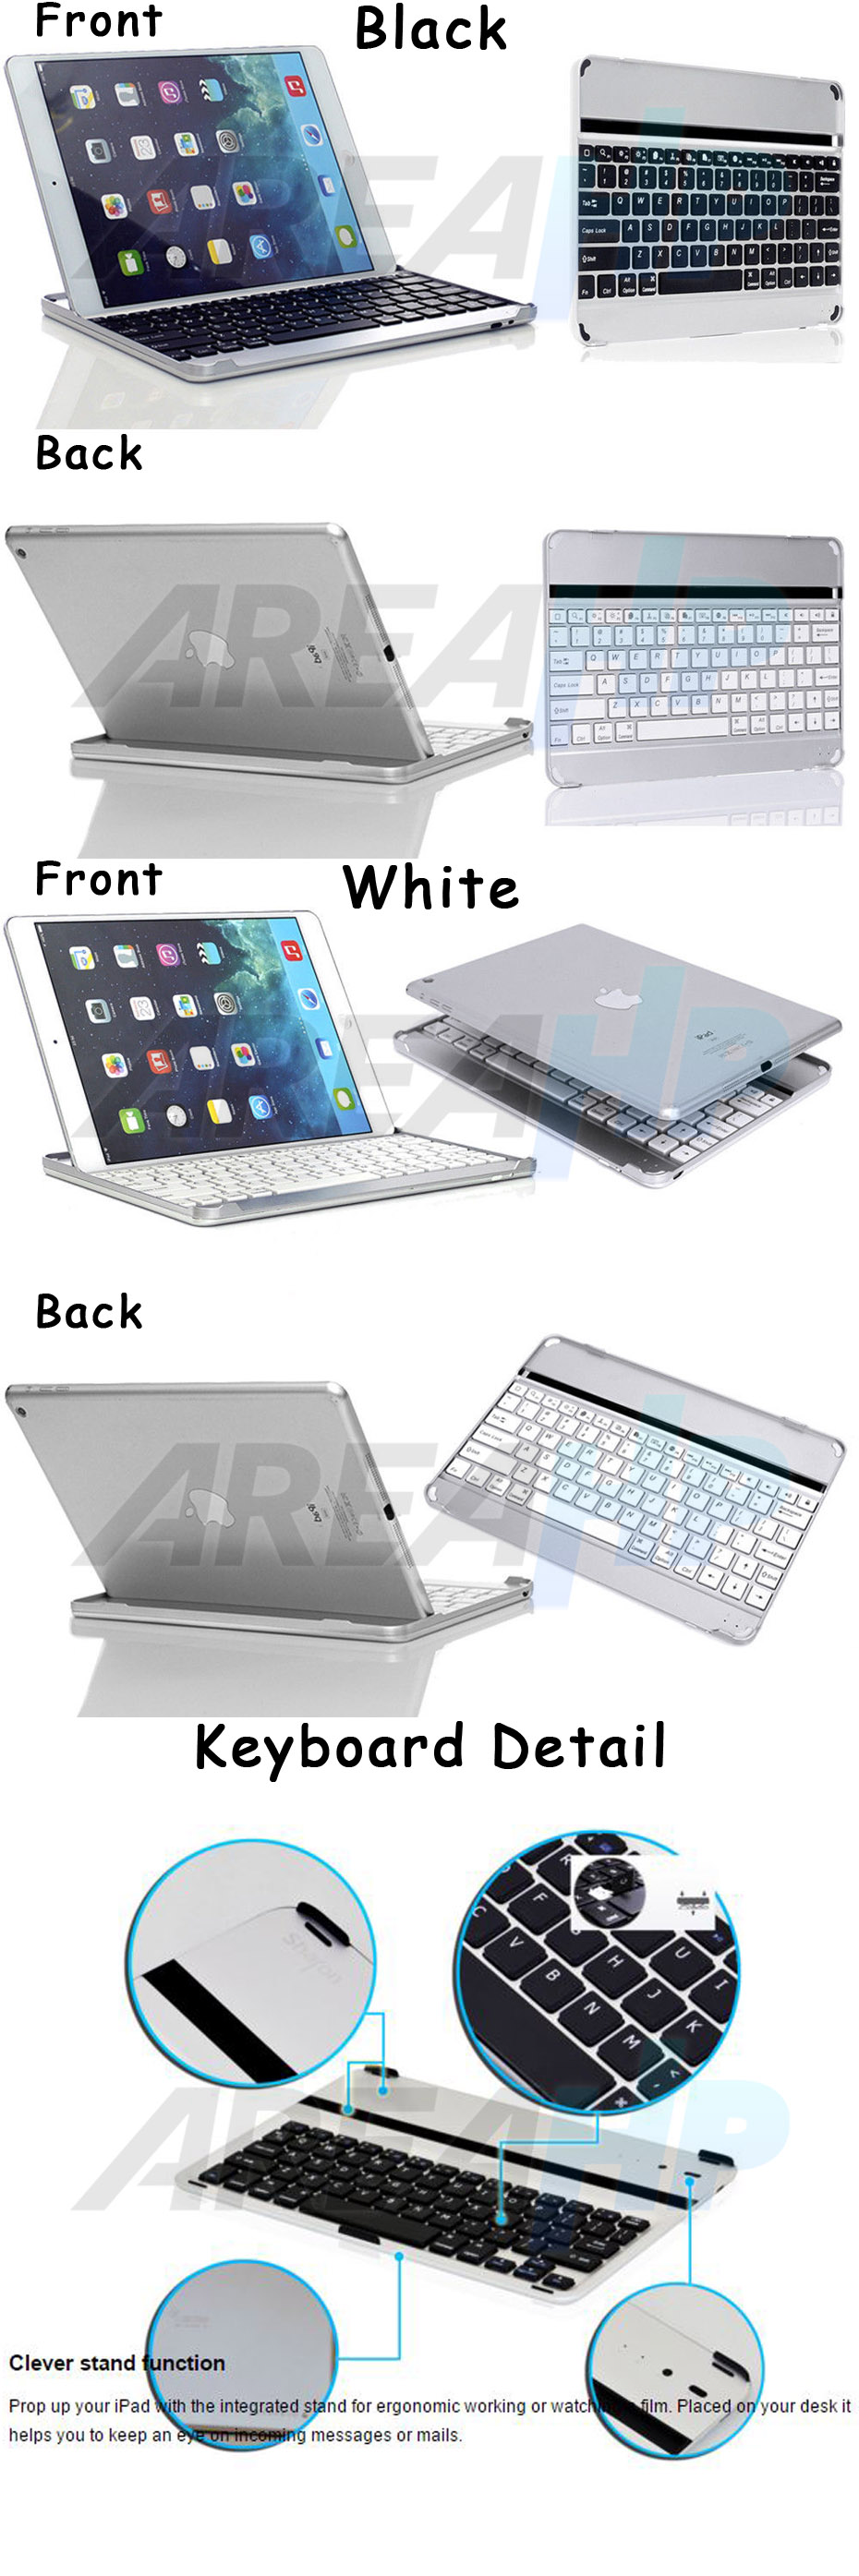 Ultra Slim Keyboard for iPad Air Overview